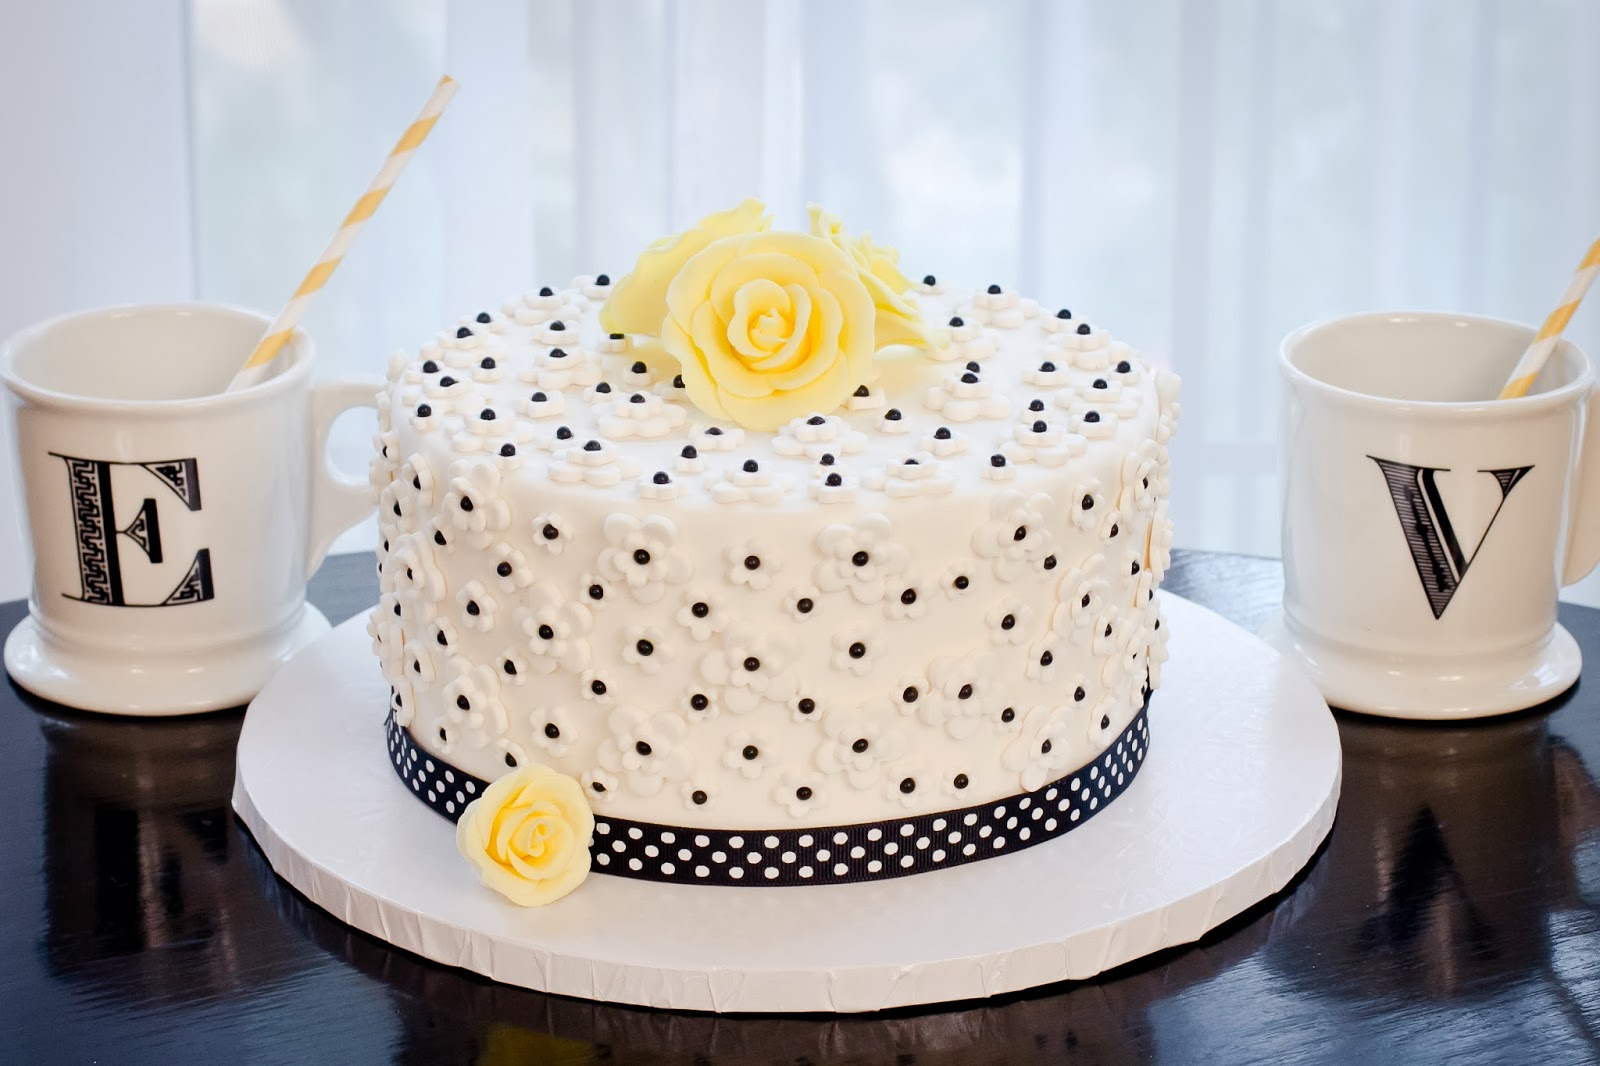 Cake Decorating Kit Of The Month : Kate Landers Events, LLC: DIY Fondant Cake Decorating Kits ...